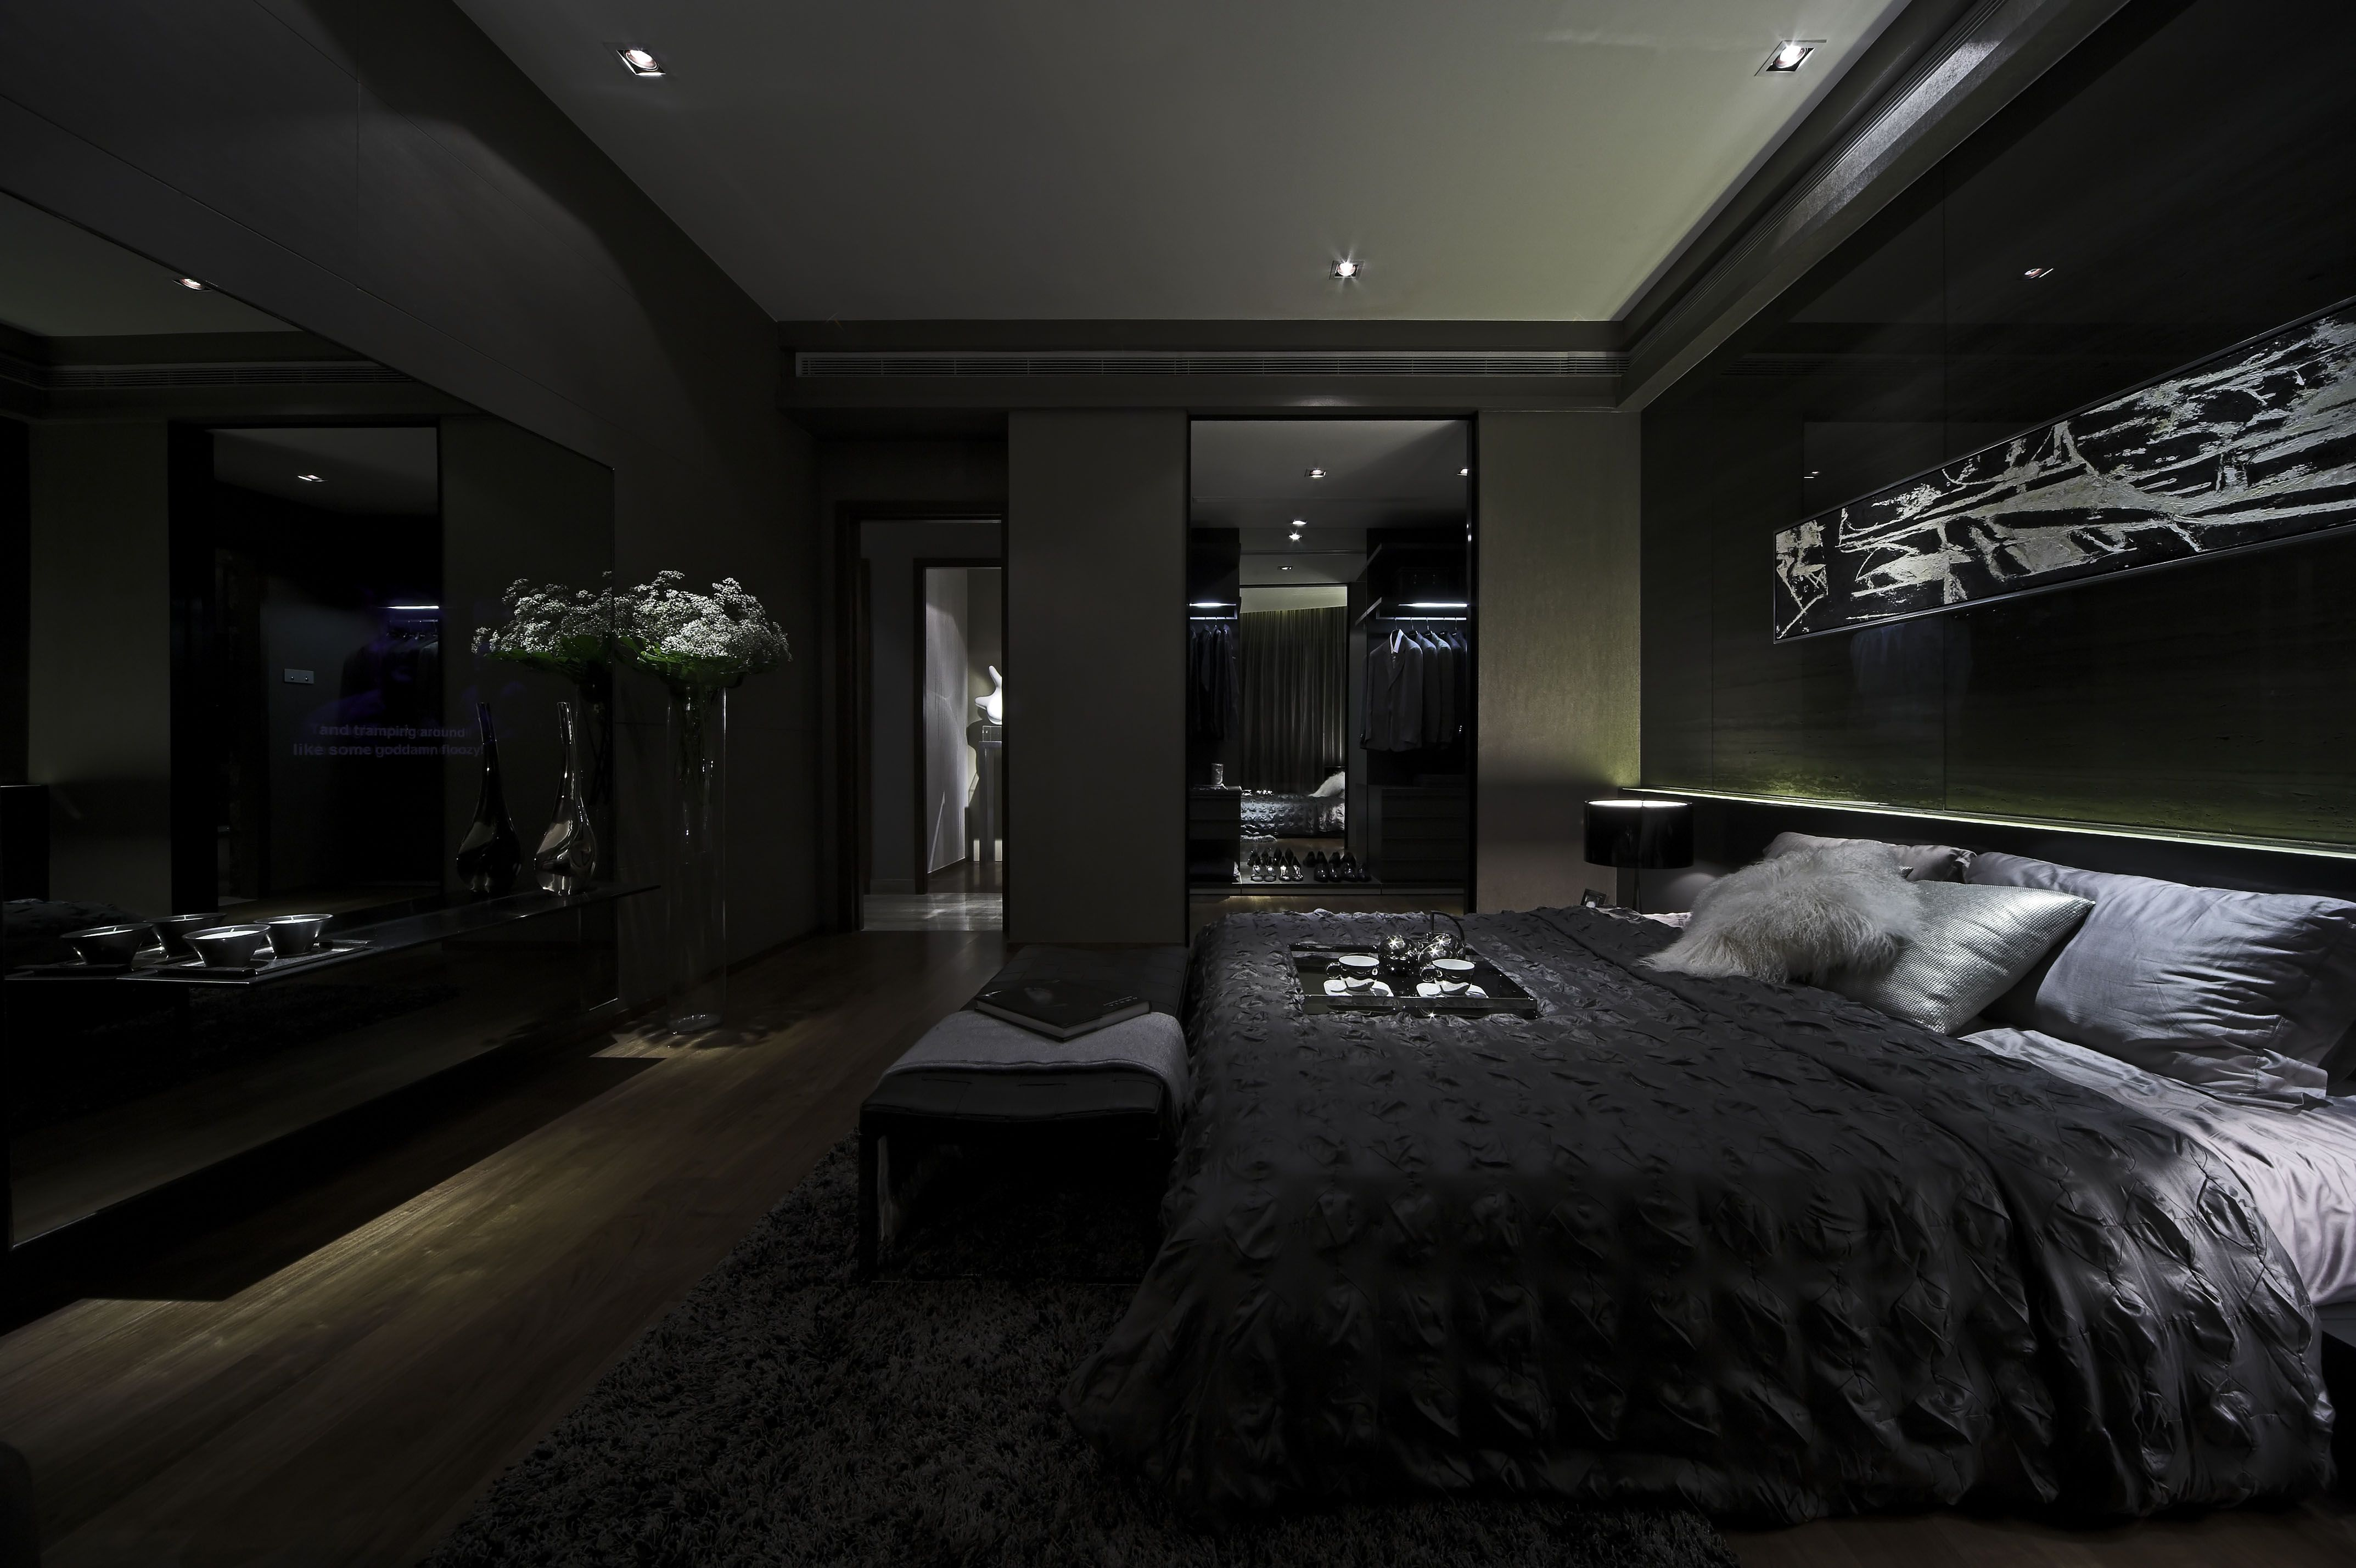 Pin By Sela 4444 On Steve Leung Luxurious Bedrooms Black Bedroom Design Luxury Bedroom Master